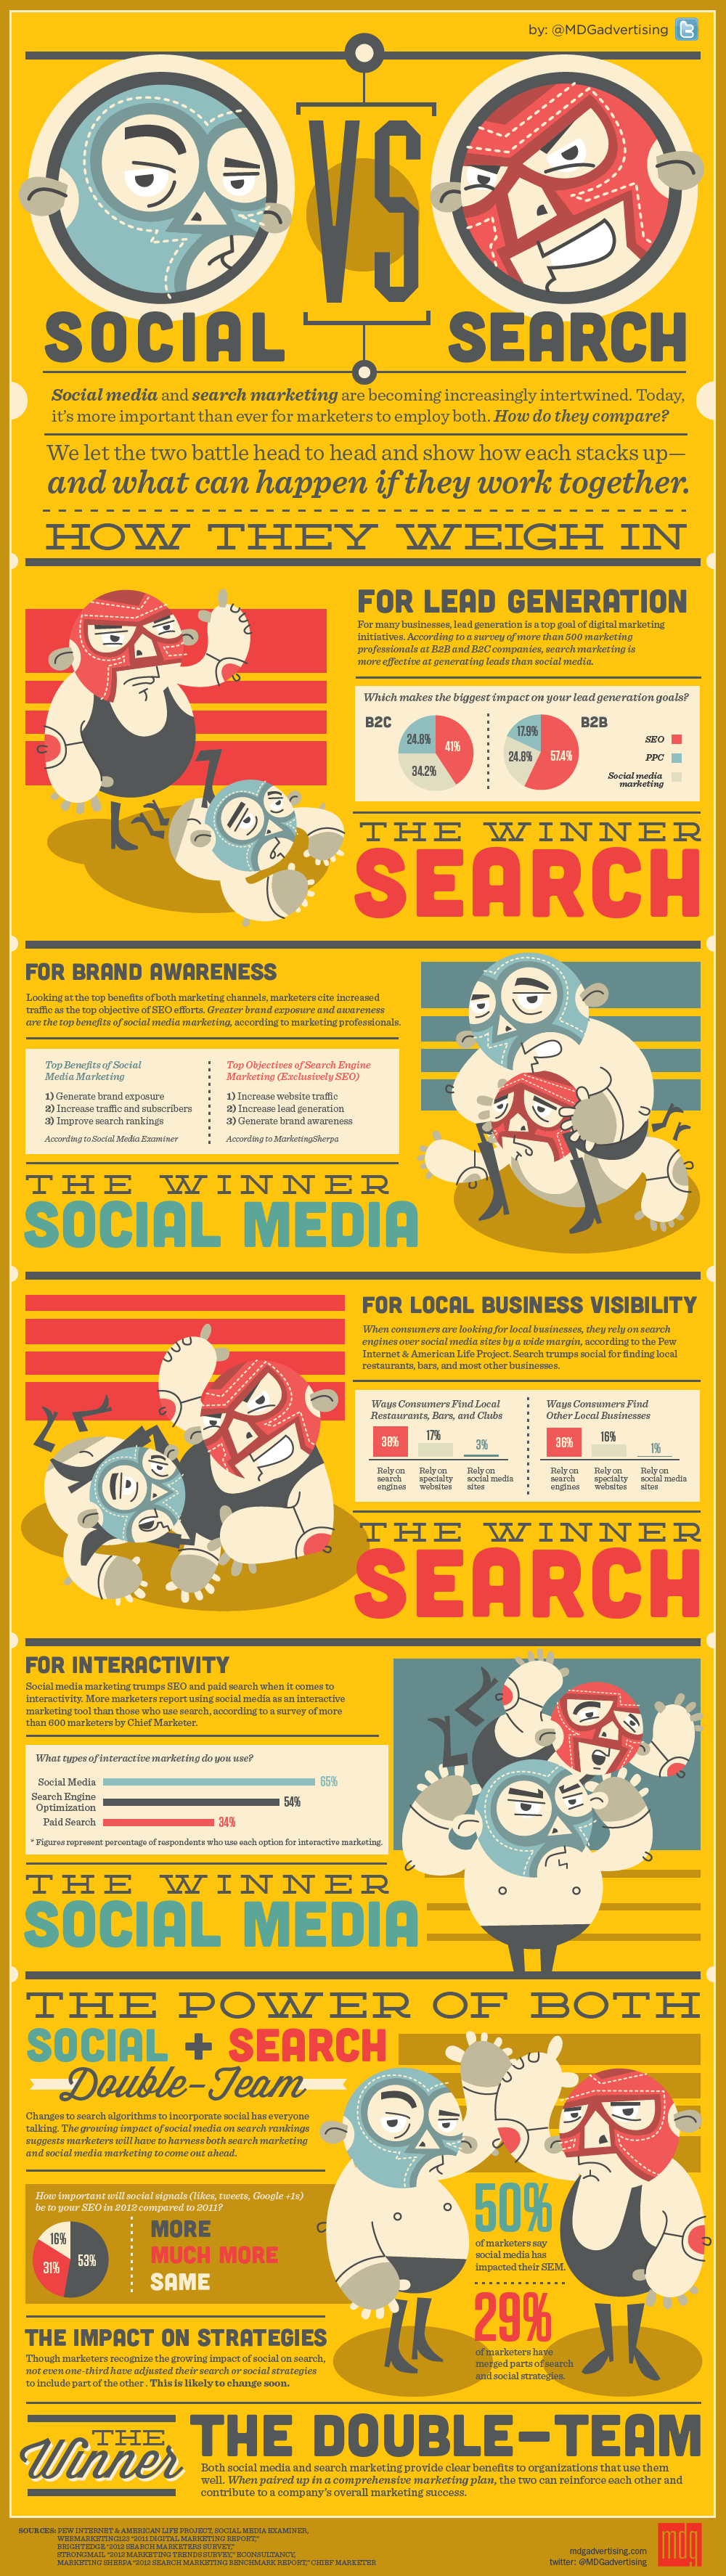 social media vs sem infographic